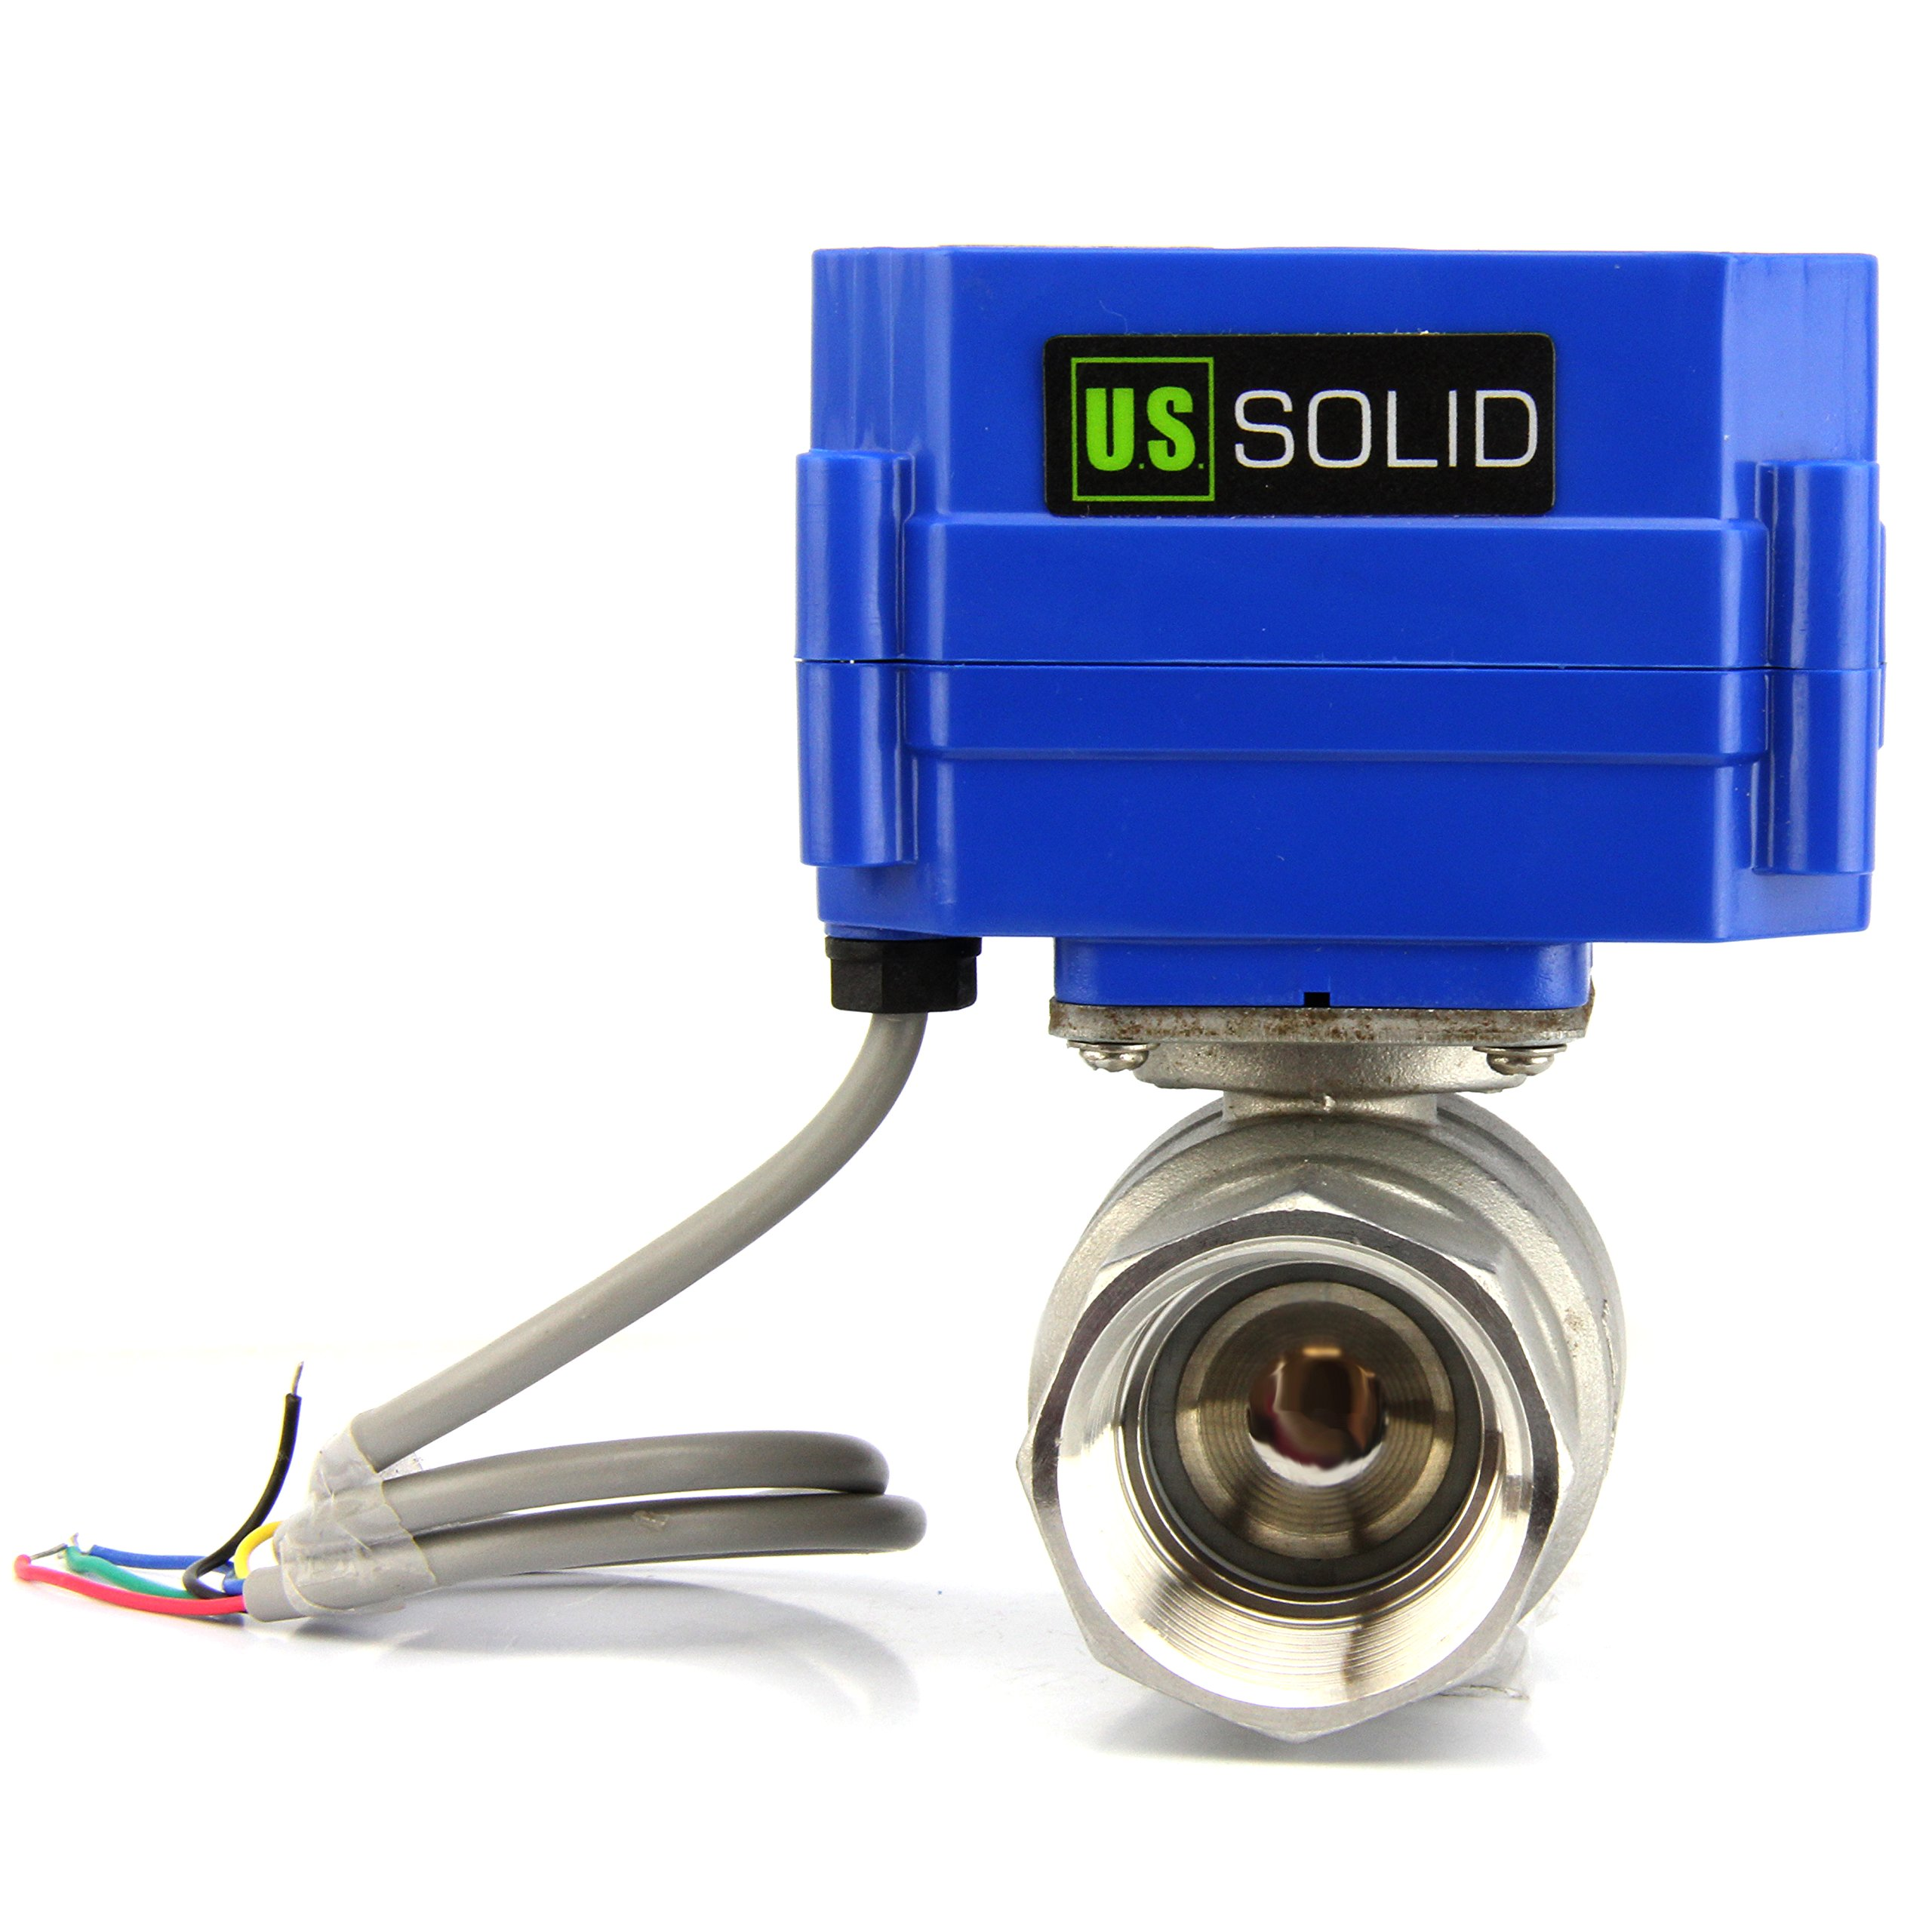 Motorized Ball Valve- 1'' Stainless Steel Electrical Ball Valve with Full Port, 9-24V DC and 5 Wire Setup, can be used with Indicator Lights, [Indicate Open or Closed Position] by U.S. Solid